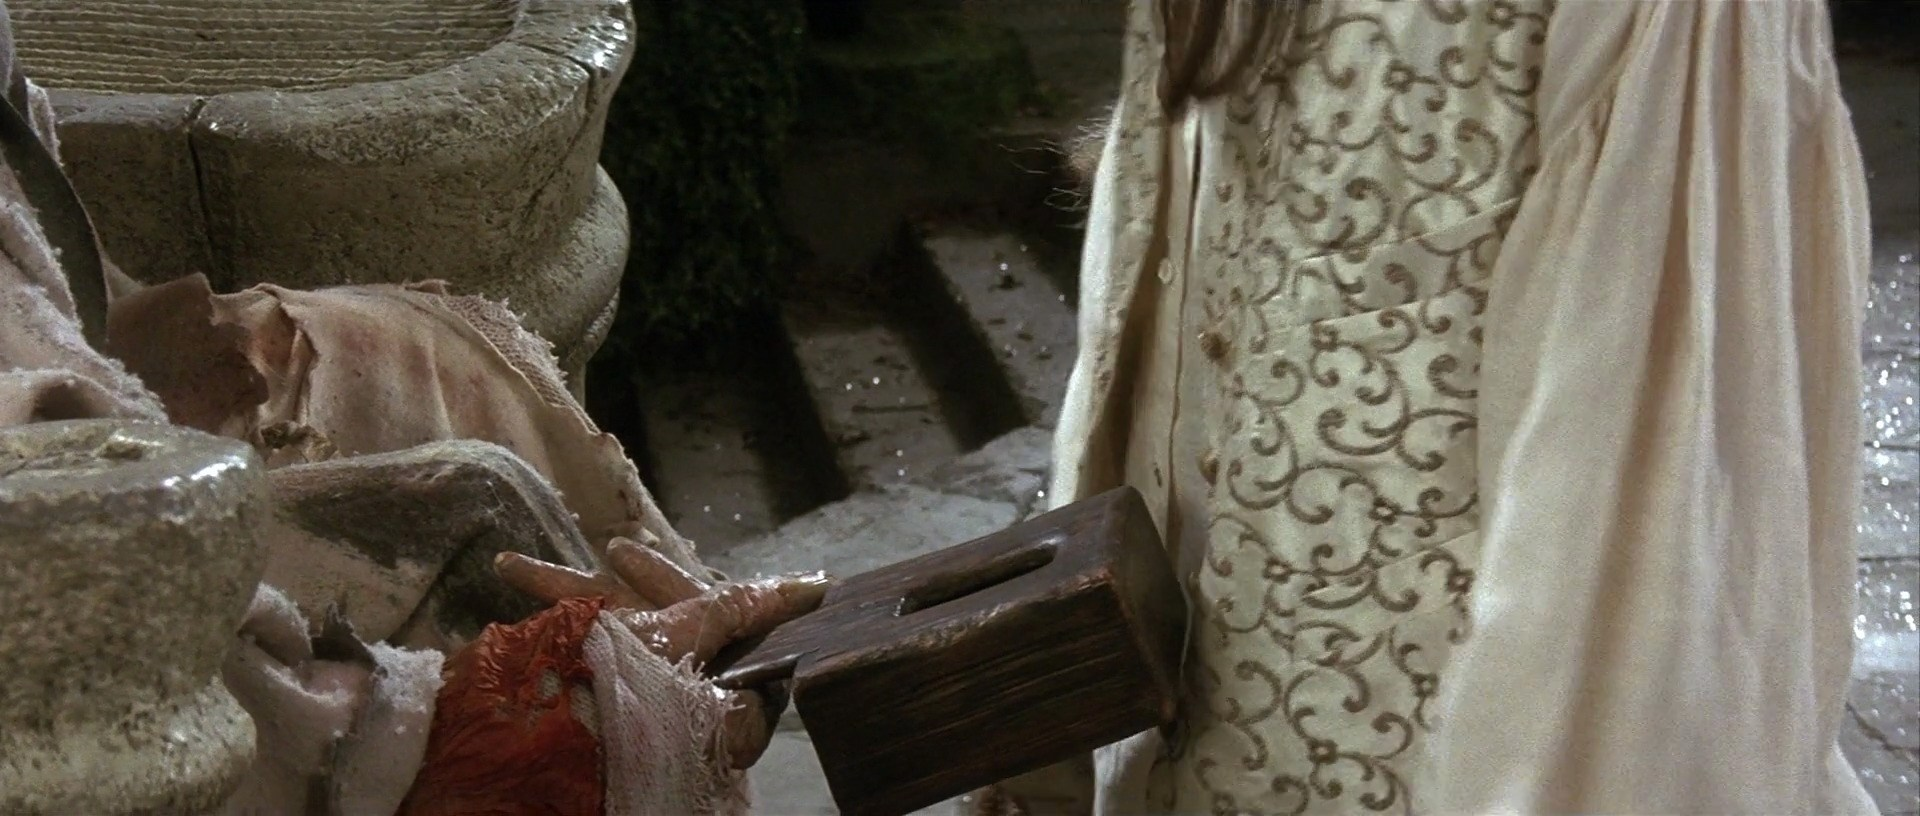 labyrinth-movie-screencaps.com-4562.jpg